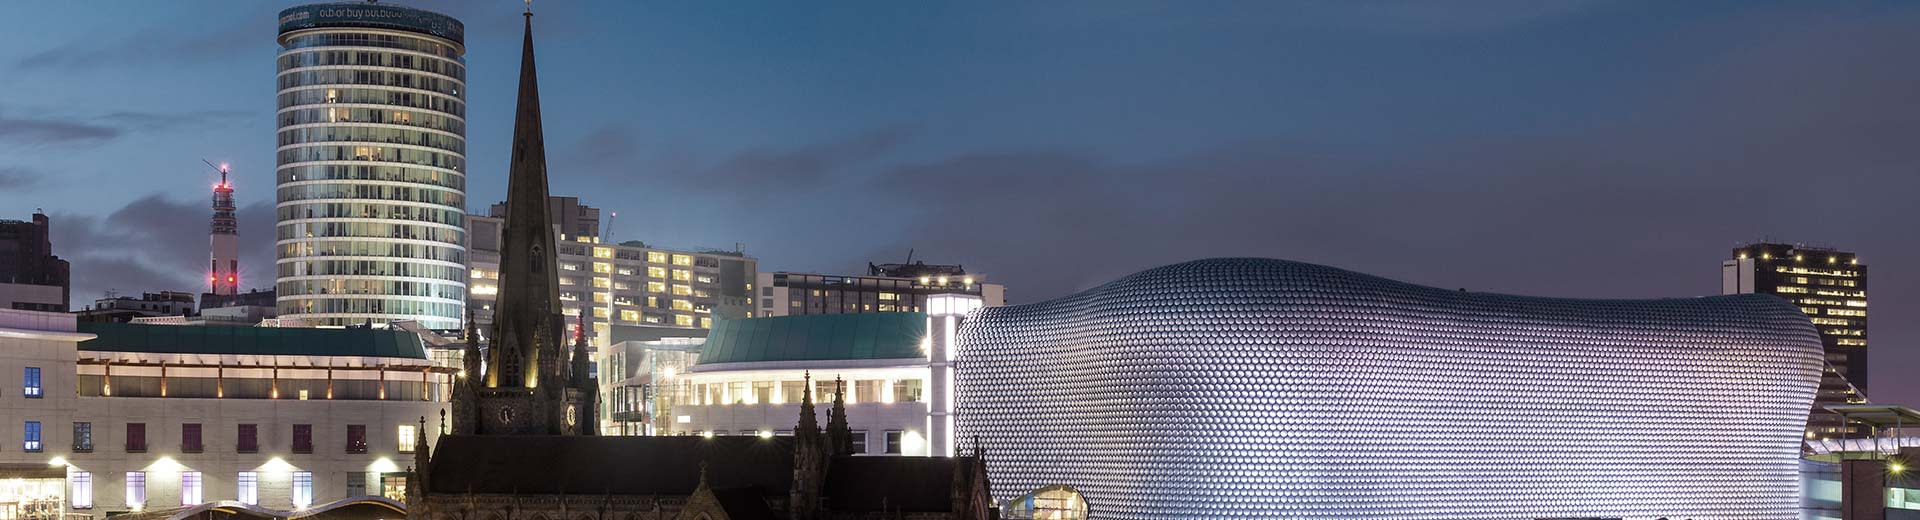 Birmingham city during the evening with the Bull Ring on the right and a church on the left